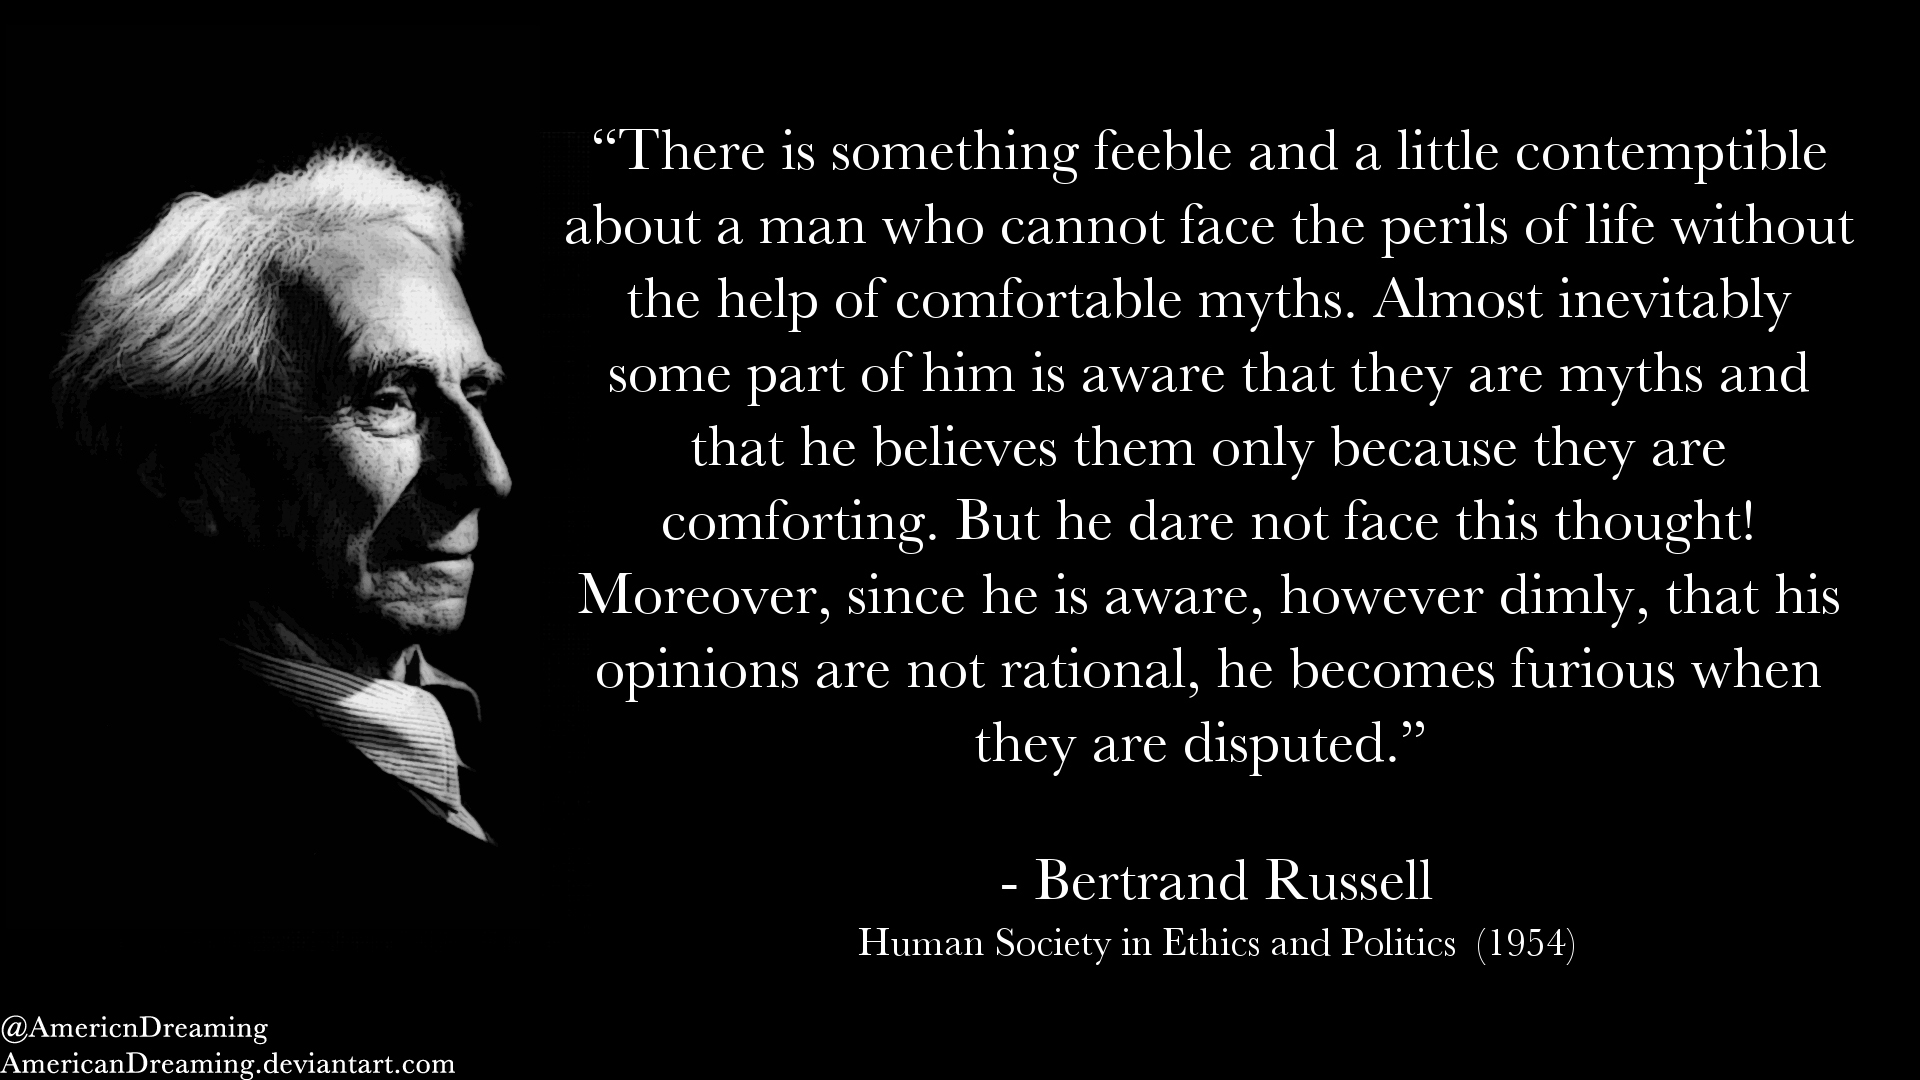 Bertrand Russell on Delusion